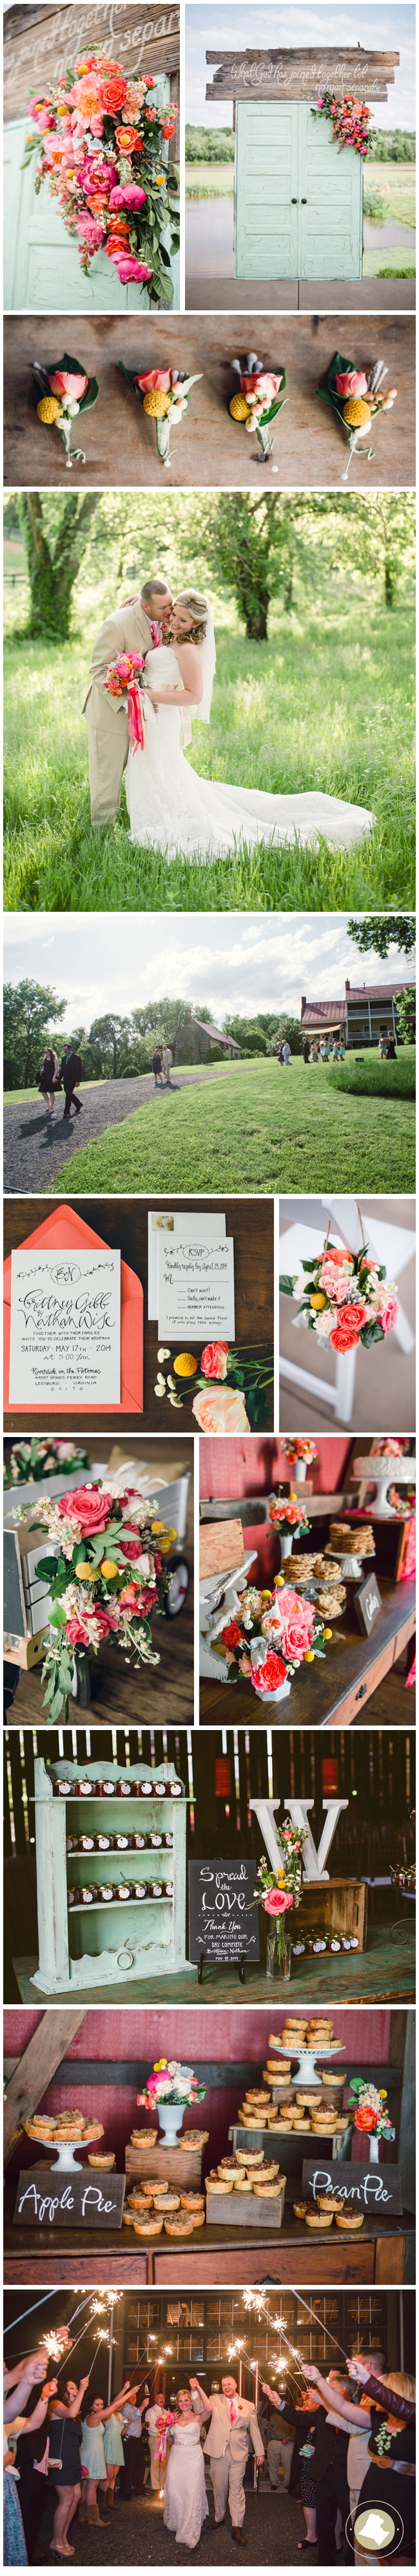 Vibrant, fresh and intimate, this Riverside On The Potomac affair was bursting with color.  Vintage touches like glass cake plates, simple bud vases and calligraphed wooden signs gave the whole event a heartwarming sense of family.  With lovely details from the rustic ceremony decor featuring distressed wooden doors bedecked with floral accents to cozy reception environs created through the use of provincial furniture details, gorgeously styled.  The picture of homespun elegance. Images Photography Du Jour.